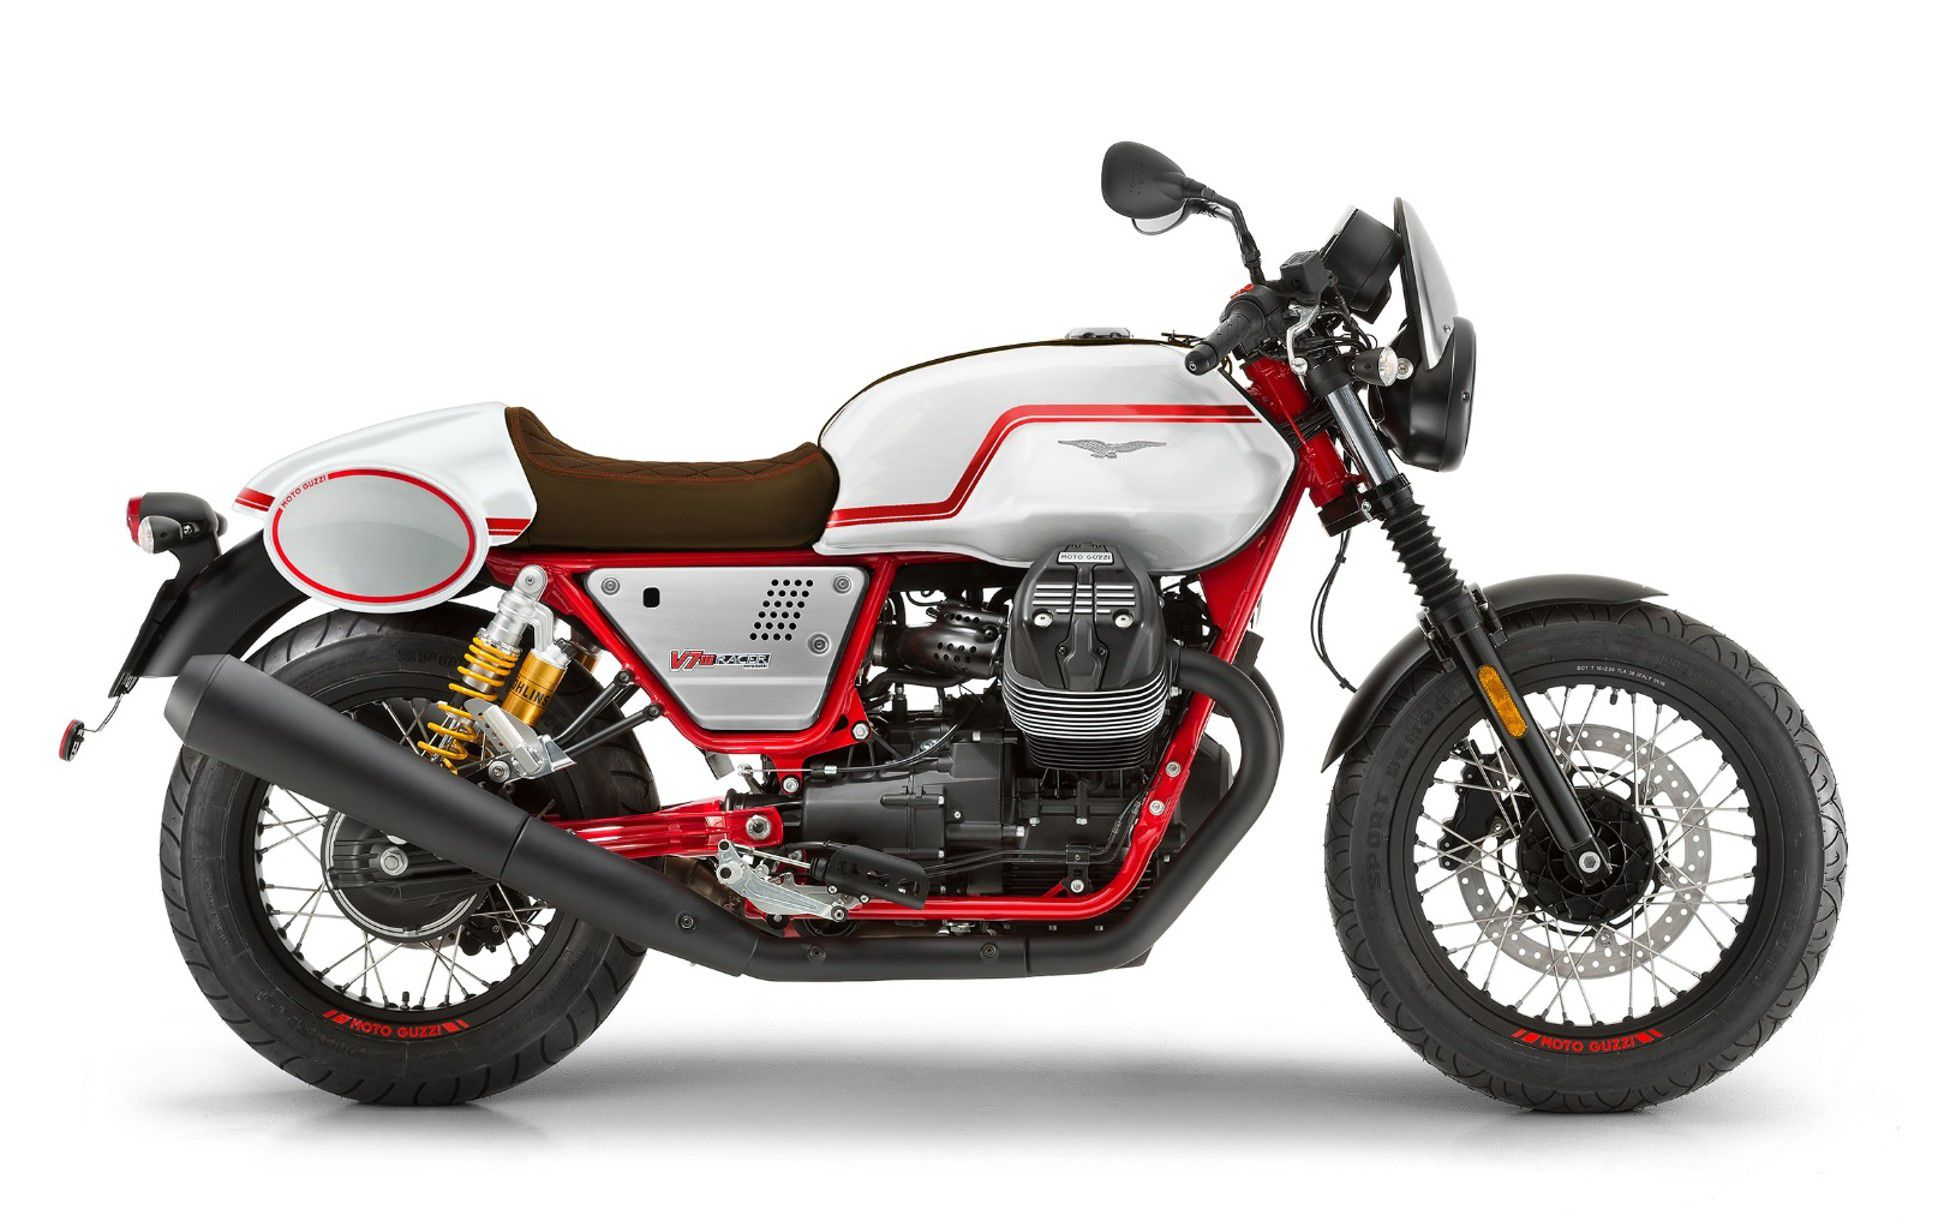 2020 Moto Guzzi V7 III Racer Limited Edition is coming to the US and Canada this summer.